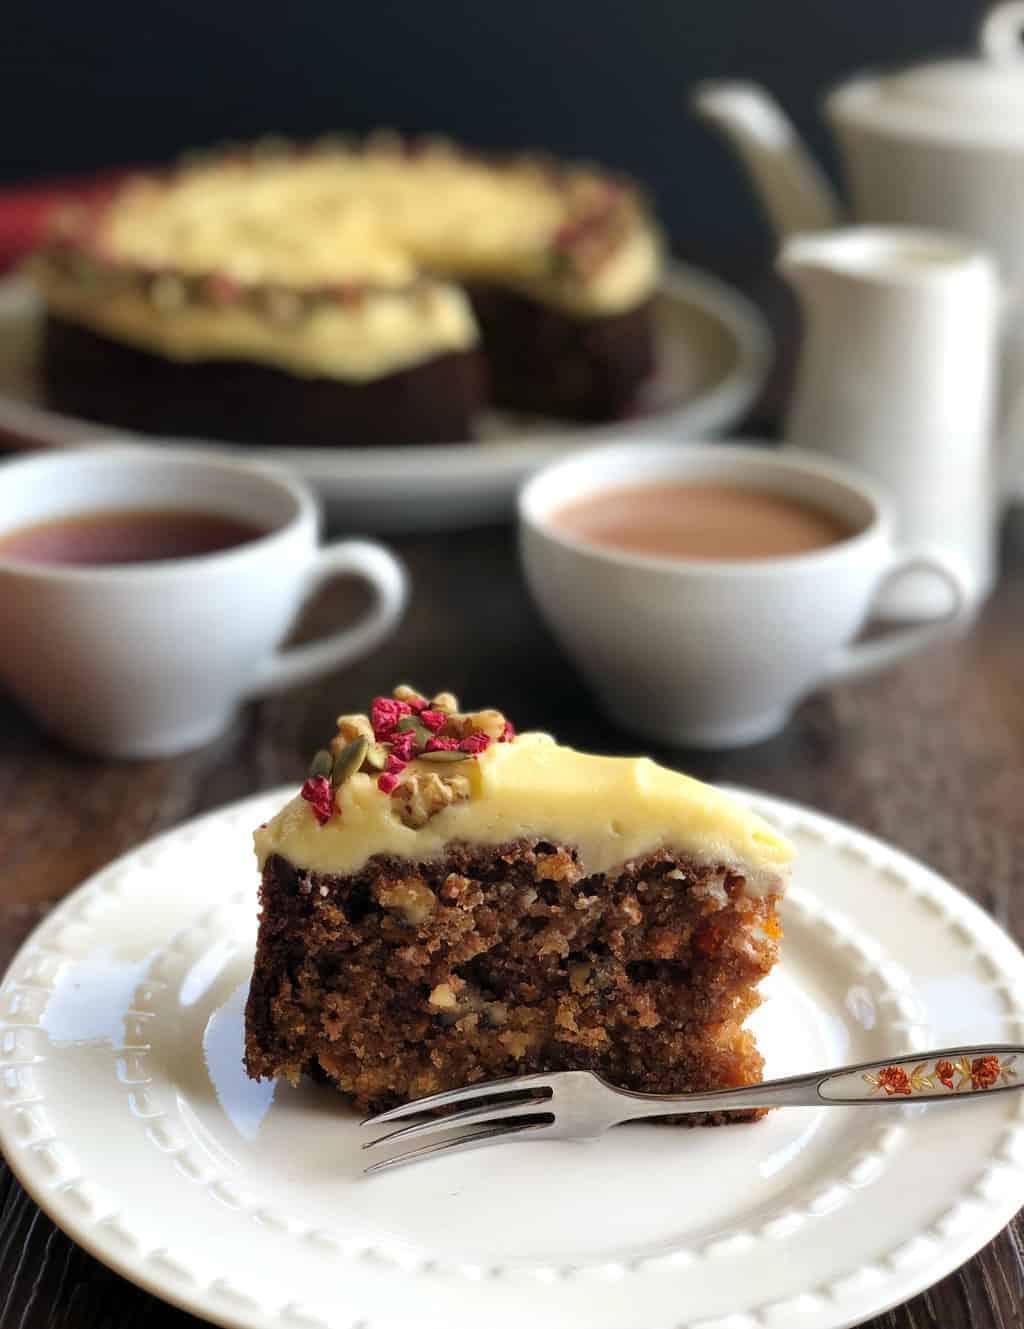 Slice of Carrot, Walnut & Pineapple Cake Just A Mum